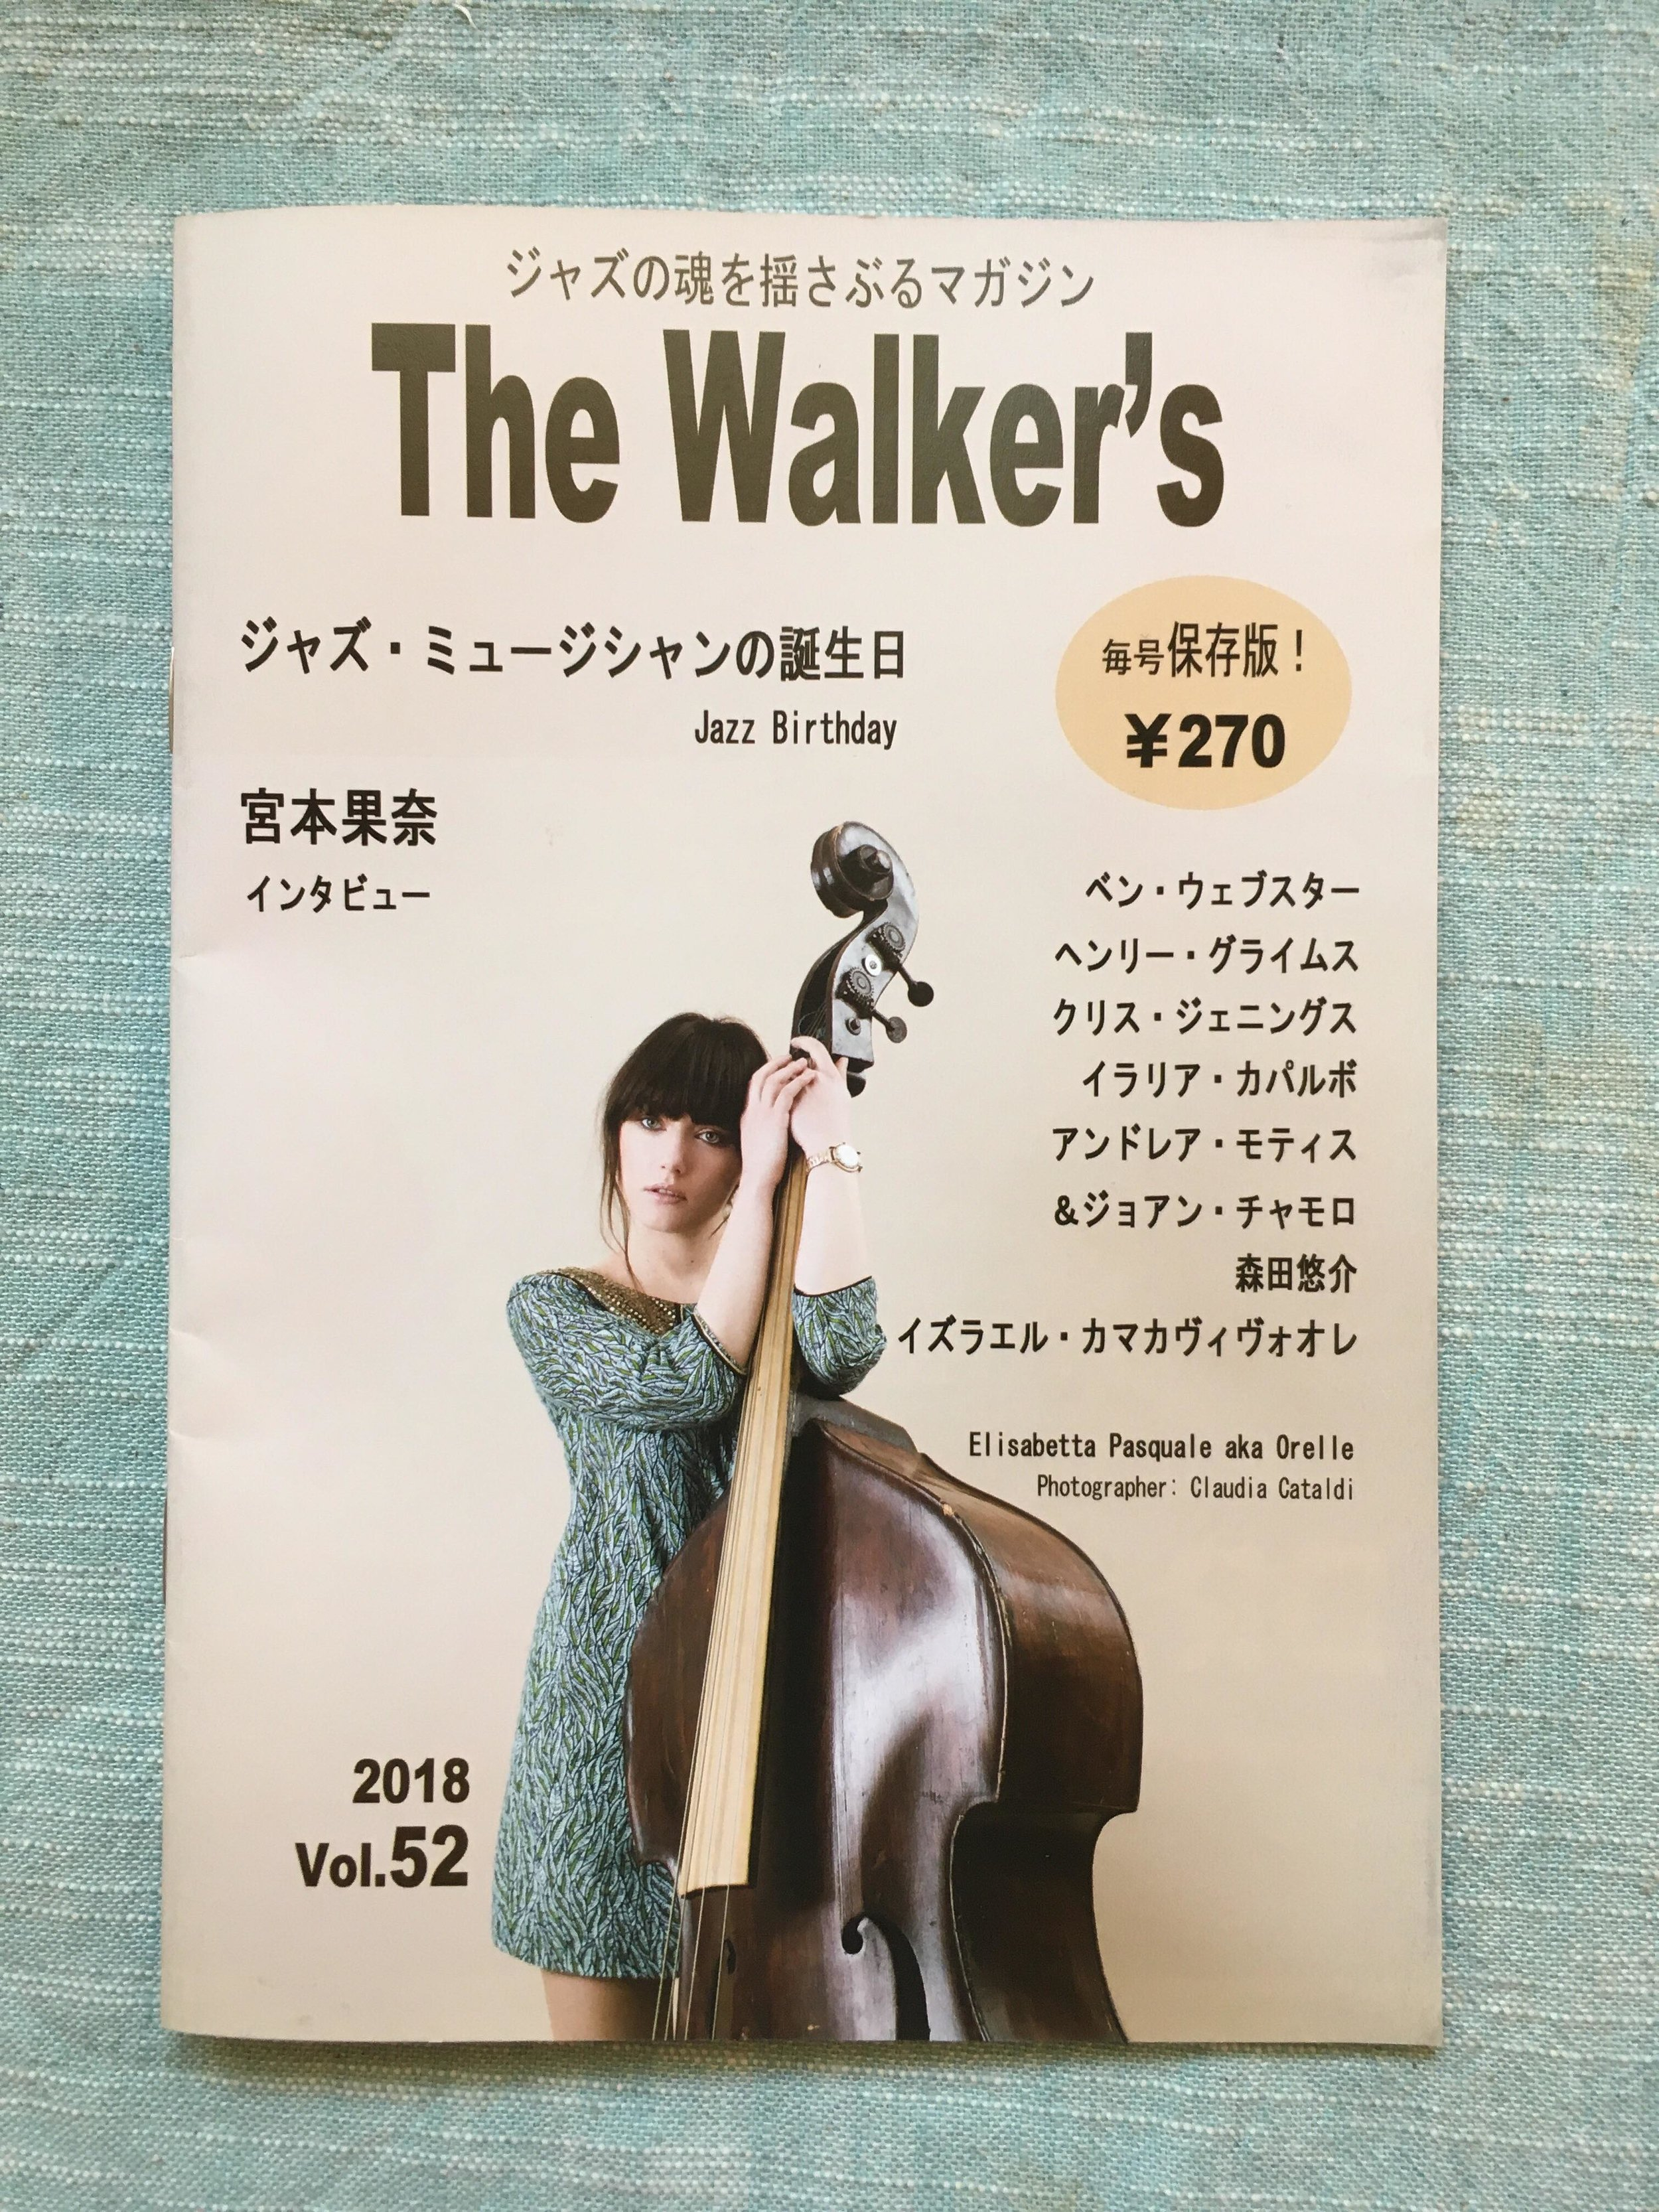 Vol. 52 if you would like to read, please check out from here (: http://www.t-walkers.com